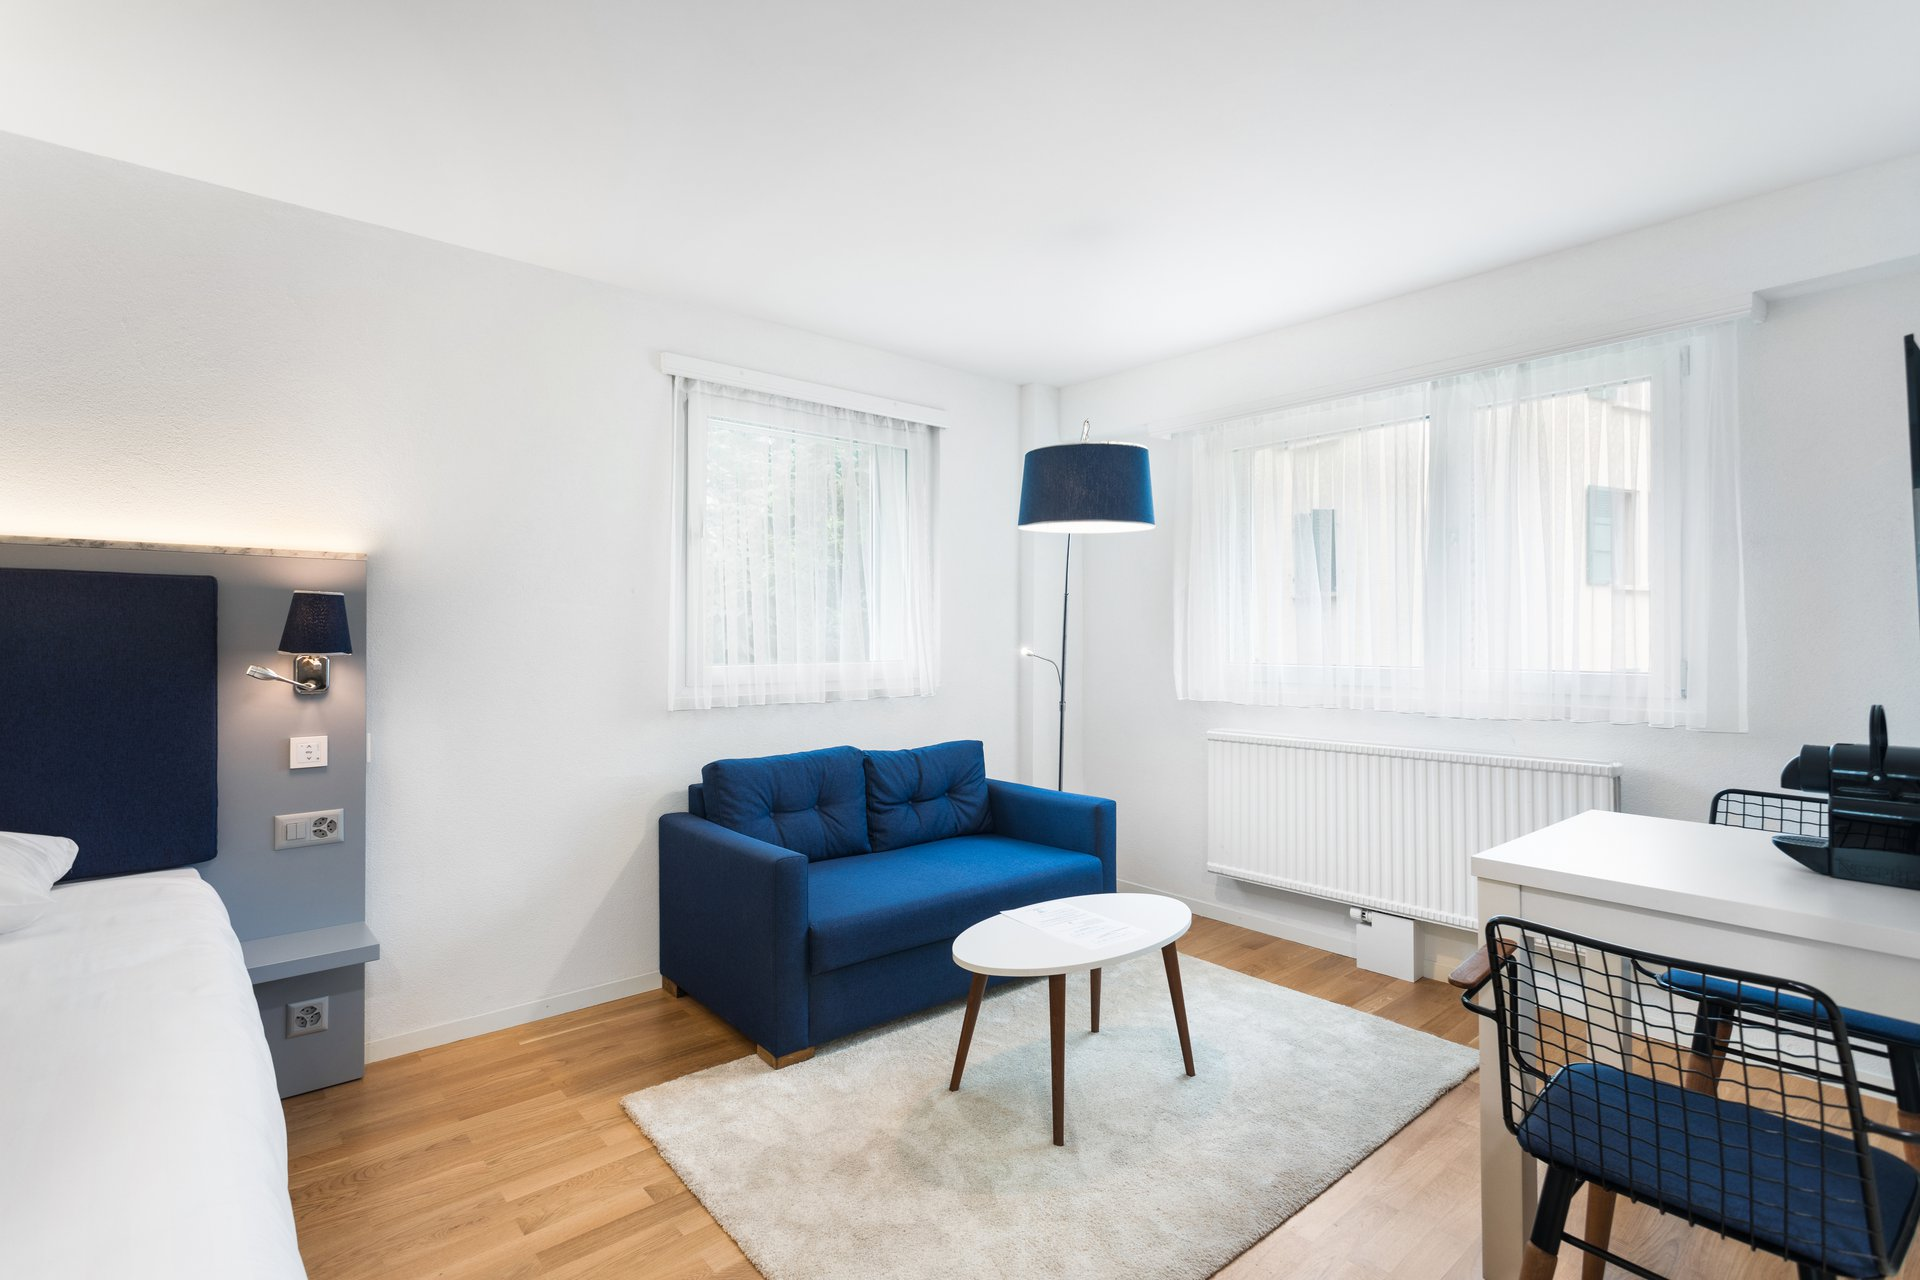 Only a few minutes from the CHUV, be the first to move in this brand new studio located in the heights of Lausanne, in La Sal